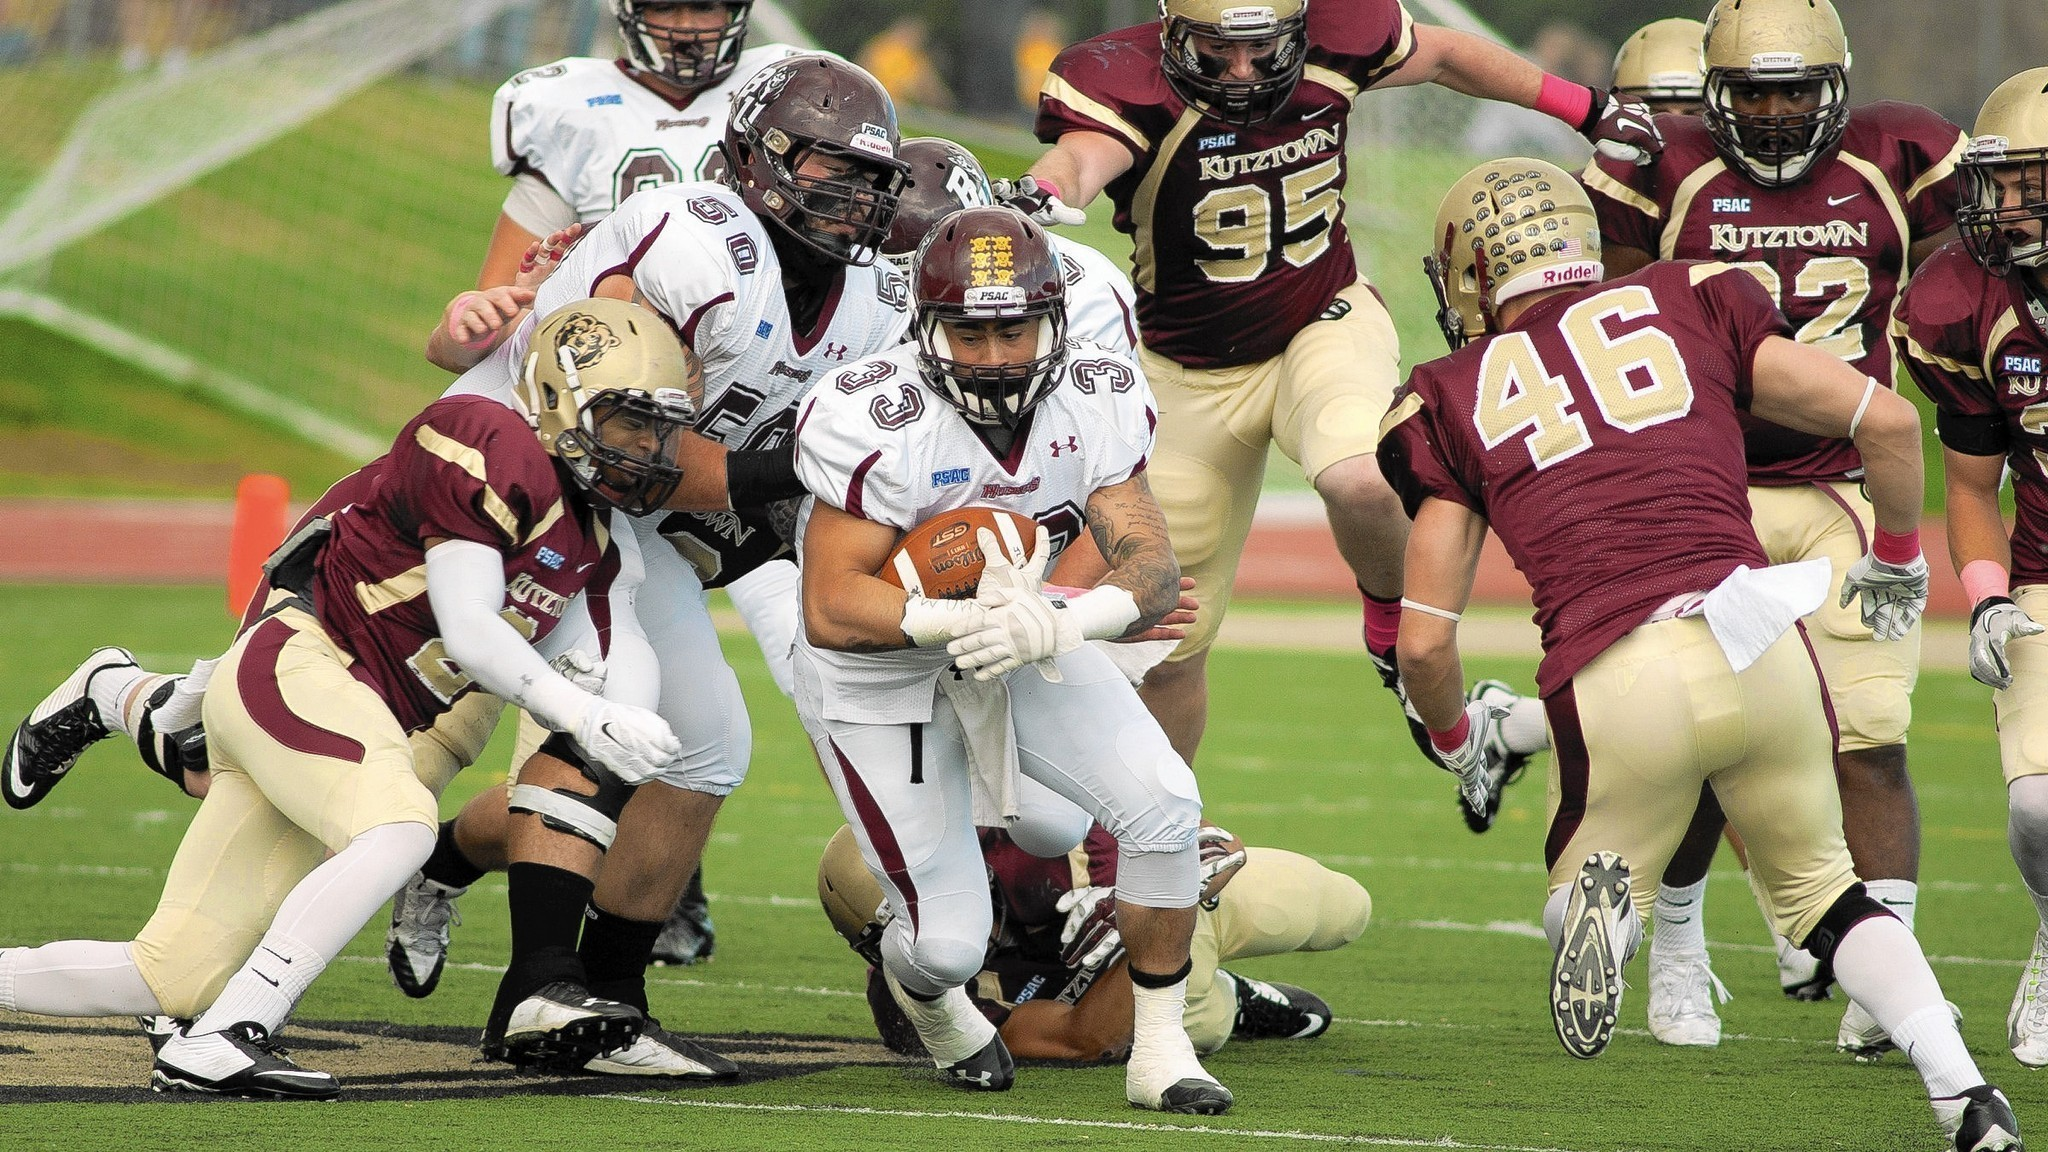 Mateo Bloomsburg Football Team Finish Off Kutztown The Morning Call